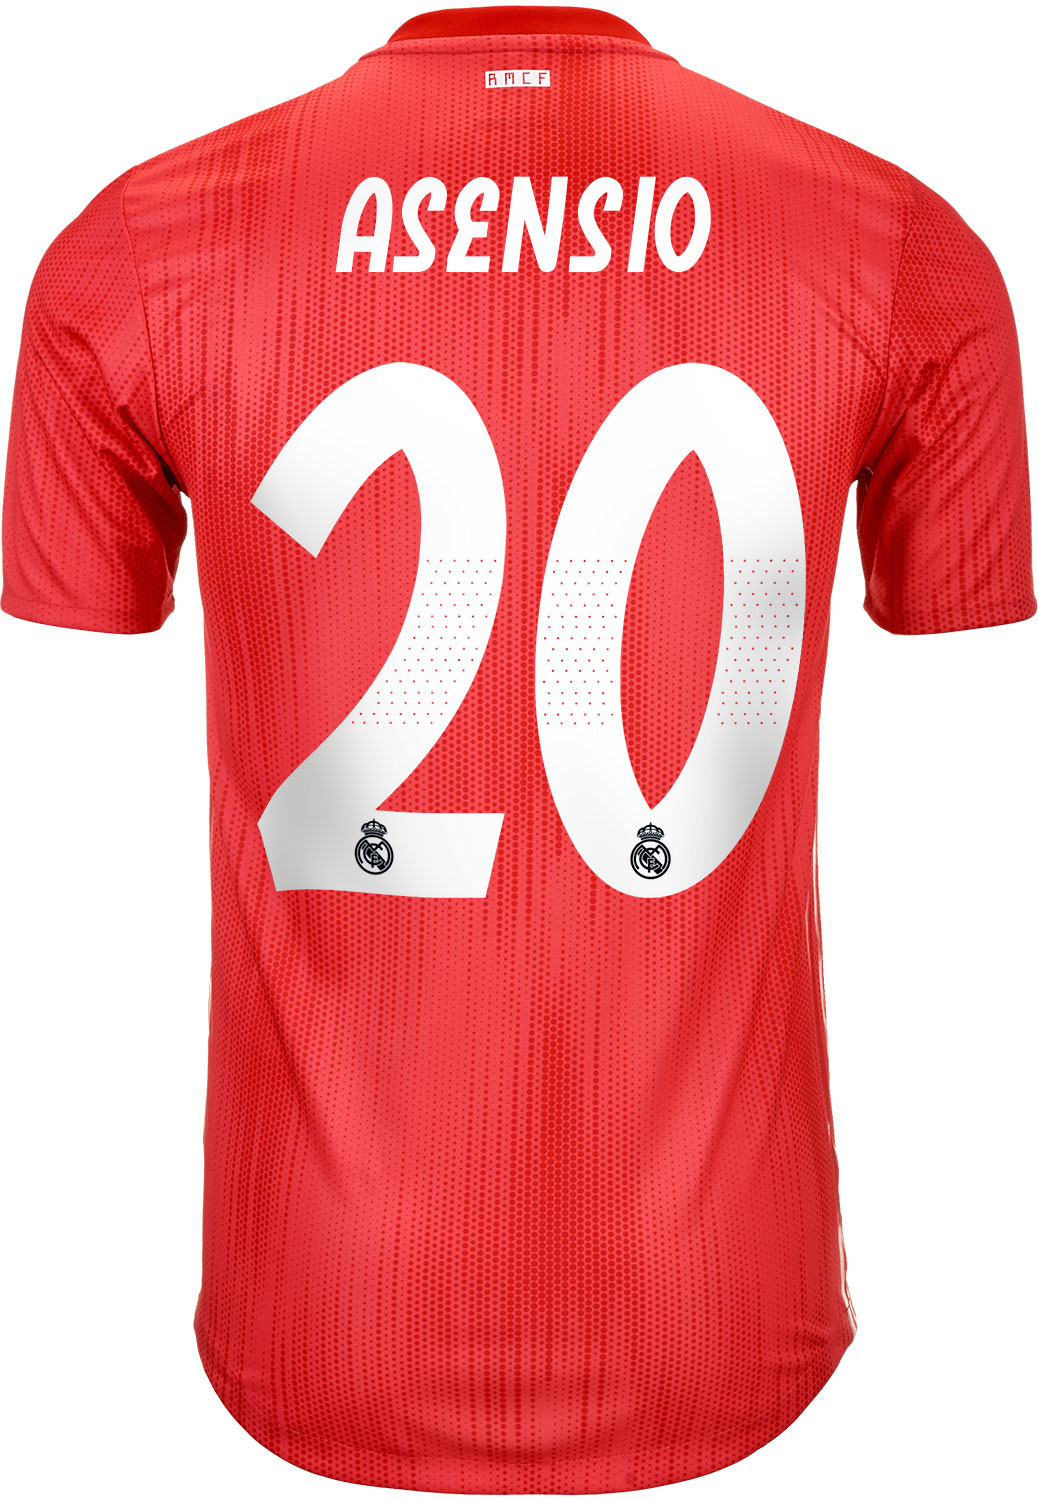 34fb84a5b00 2018 19 adidas Marco Asensio Real Madrid Authentic 3rd Jersey ...